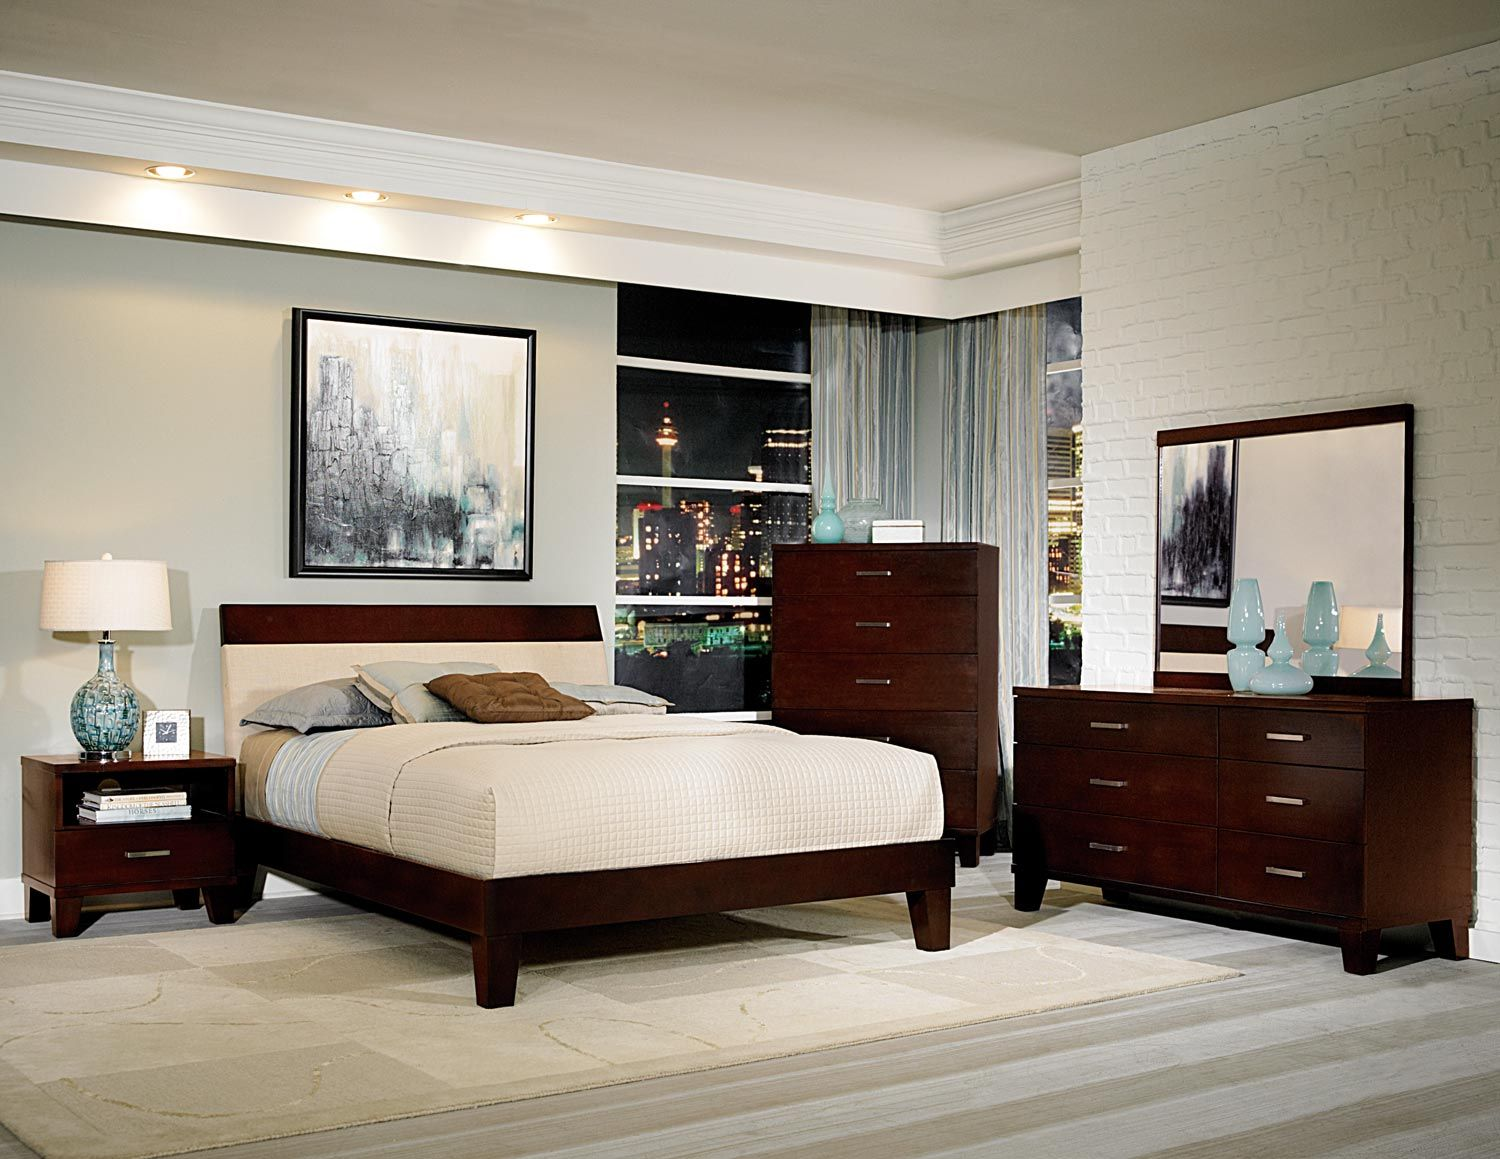 Evianna Dark E Brown Platform Bedroom Set With Upholstered Headboard Ping S On Sets